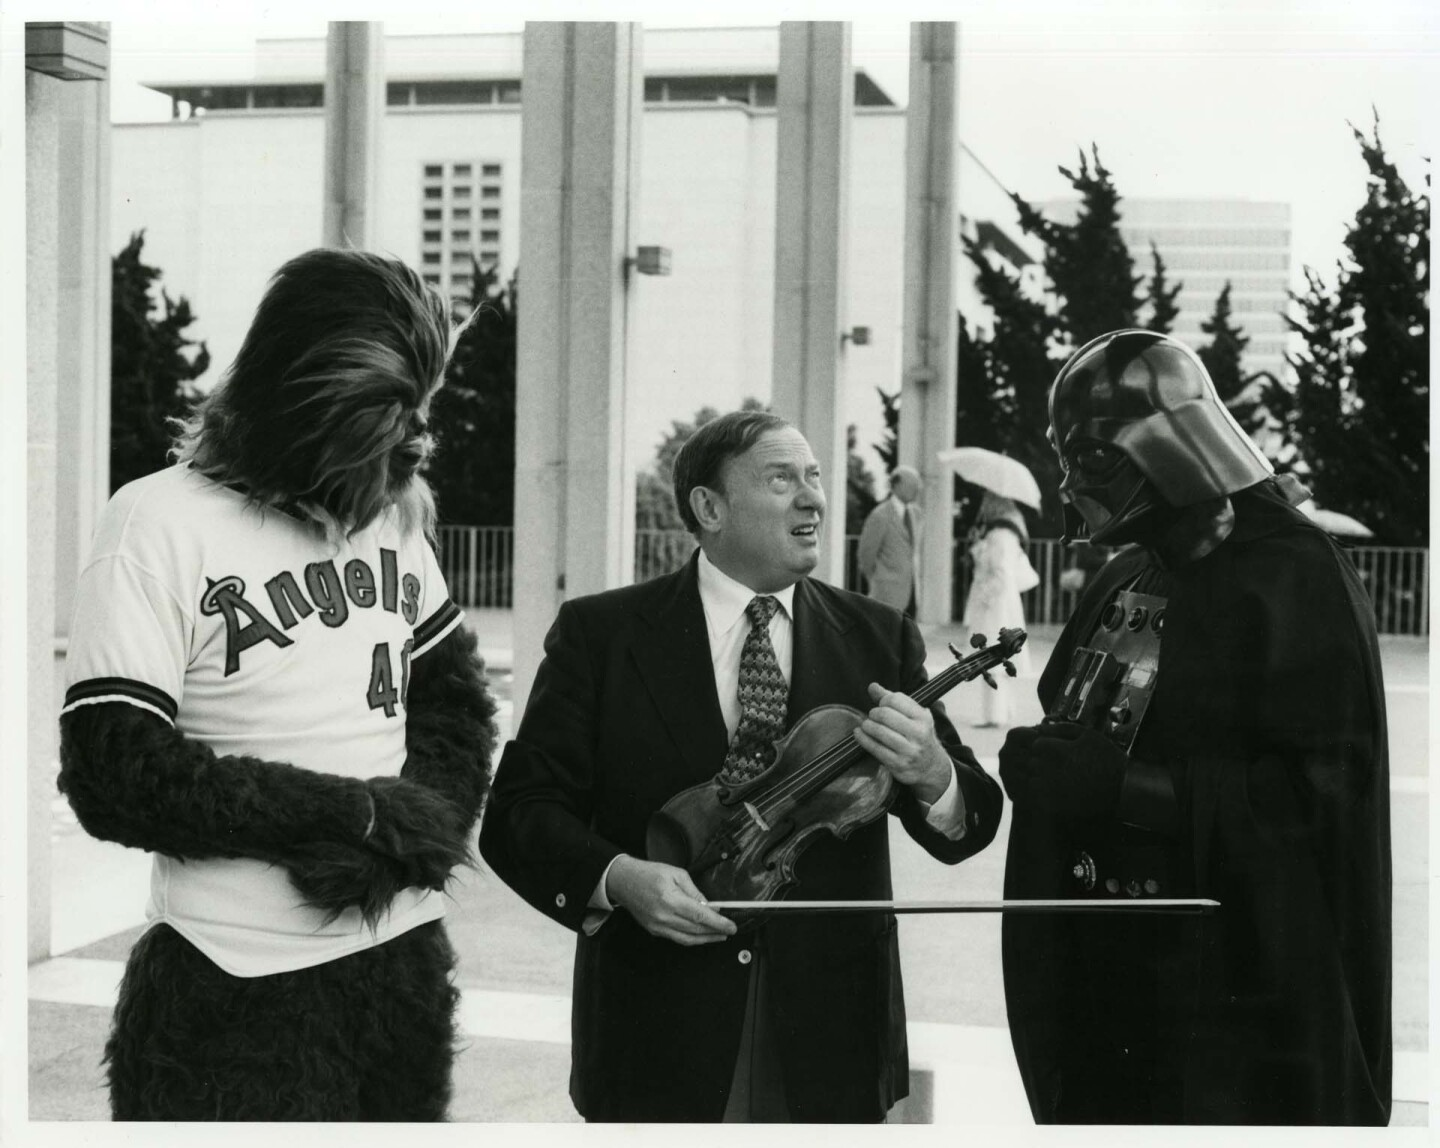 """Concertmaster Sidney Harth, Chewbacca in an Angels jersey and a costumed Darth Vader promote the Music from Outer Space concert at Anaheim Stadium after """"Star Wars"""" was released 